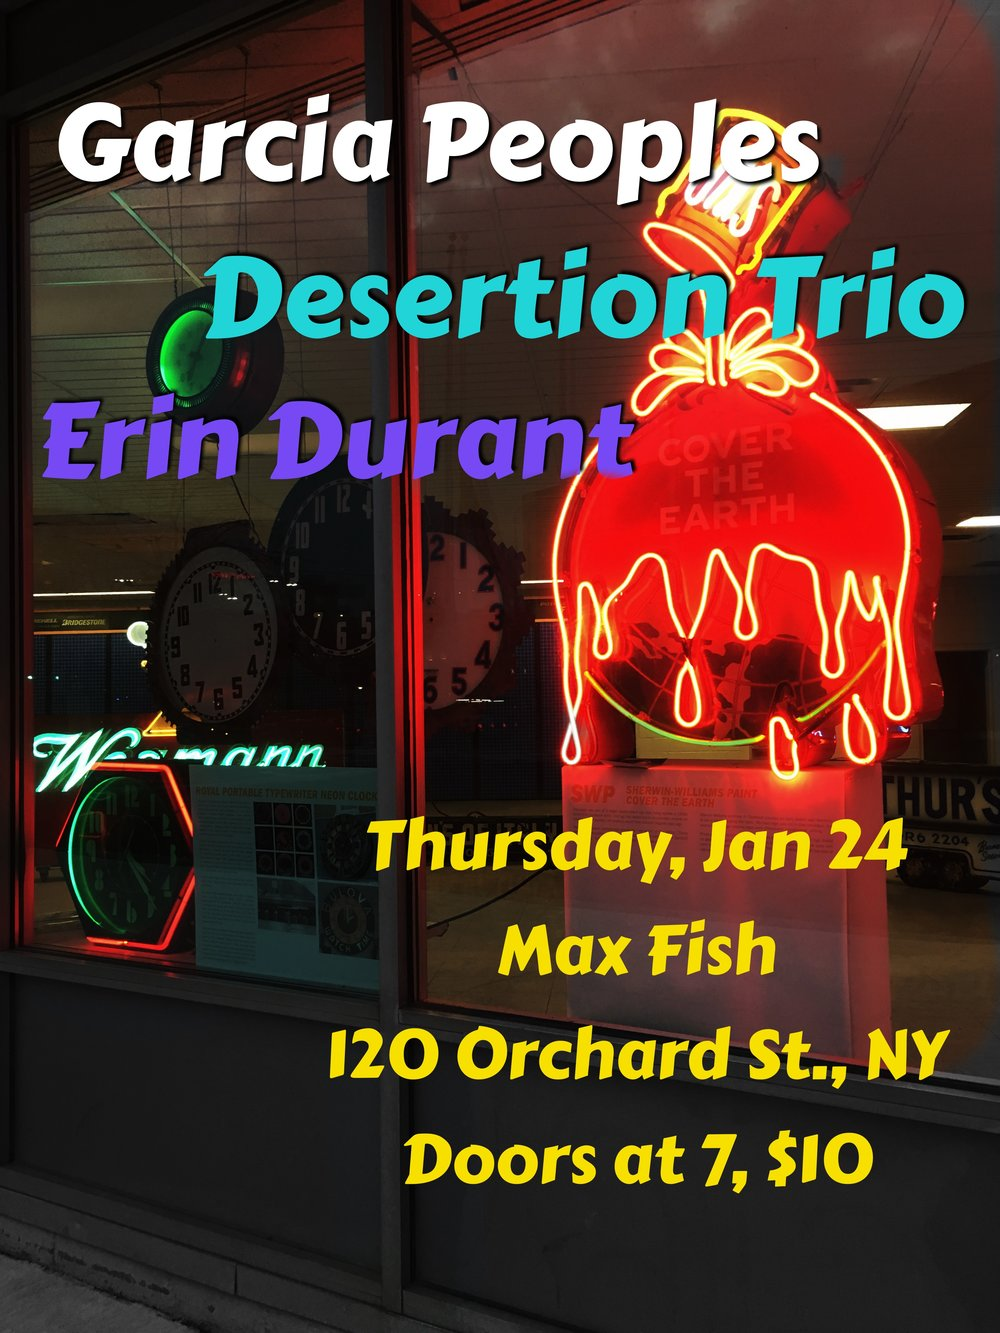 LIVE MUSIC NOT TO BE MISSED THURSDAY JAN. 24TH @maxfishbar